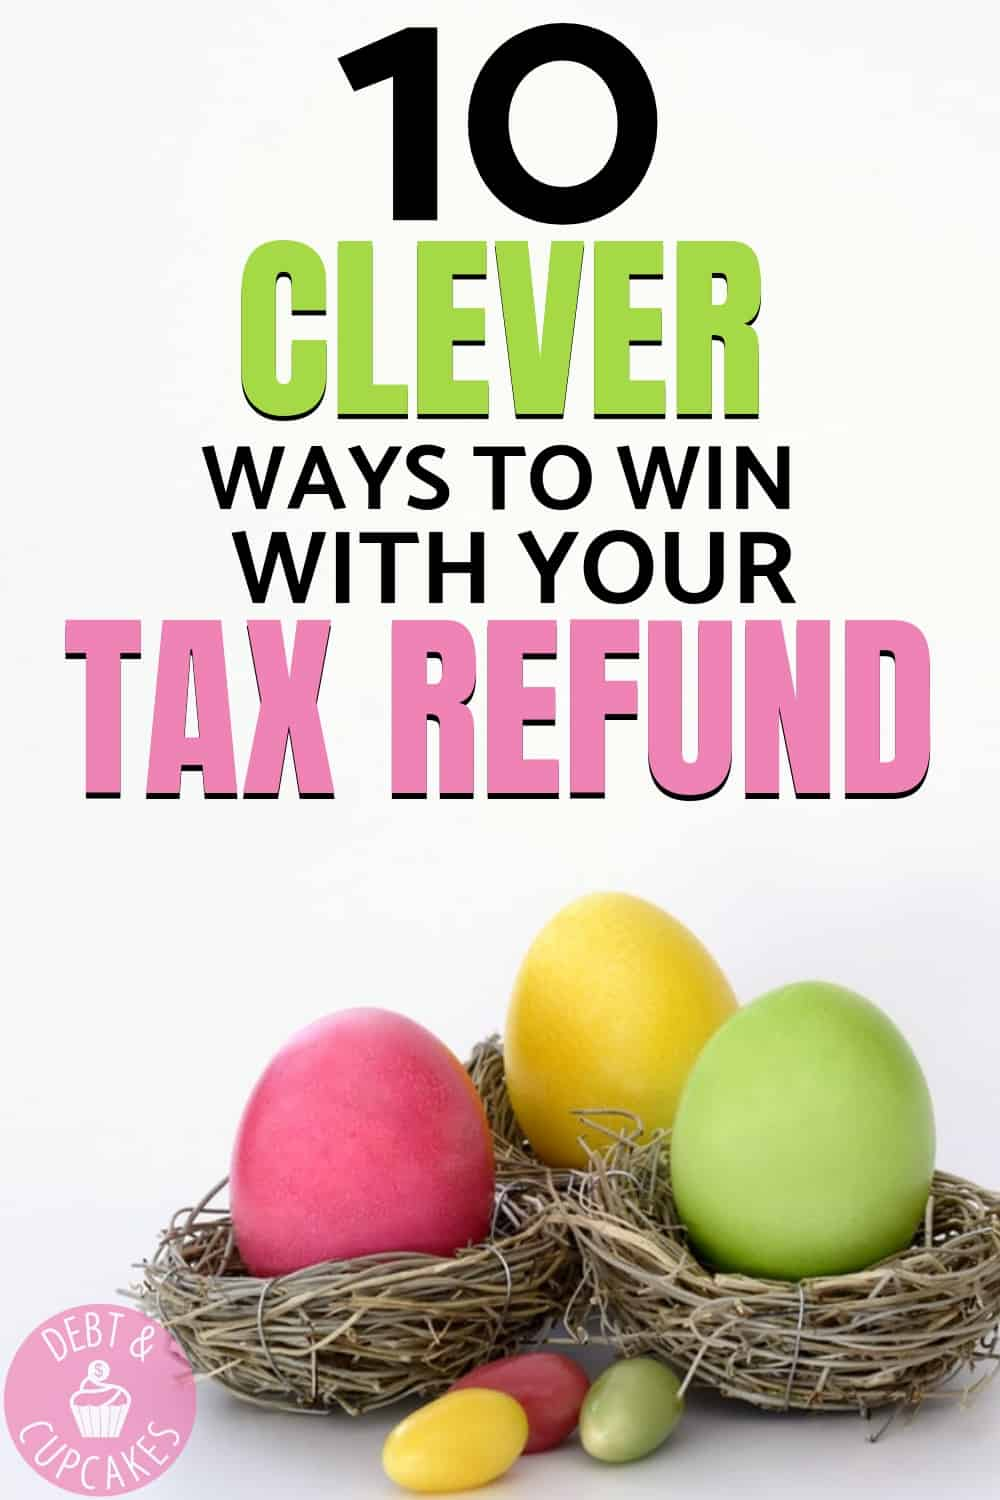 If you're getting at tax refund, you should use it to build wealth? But how? Pay off debt, save money, or invest? There are many ways to win, and these 10 tips will help you build wealth with you tax refund this year! Click to learn more!!